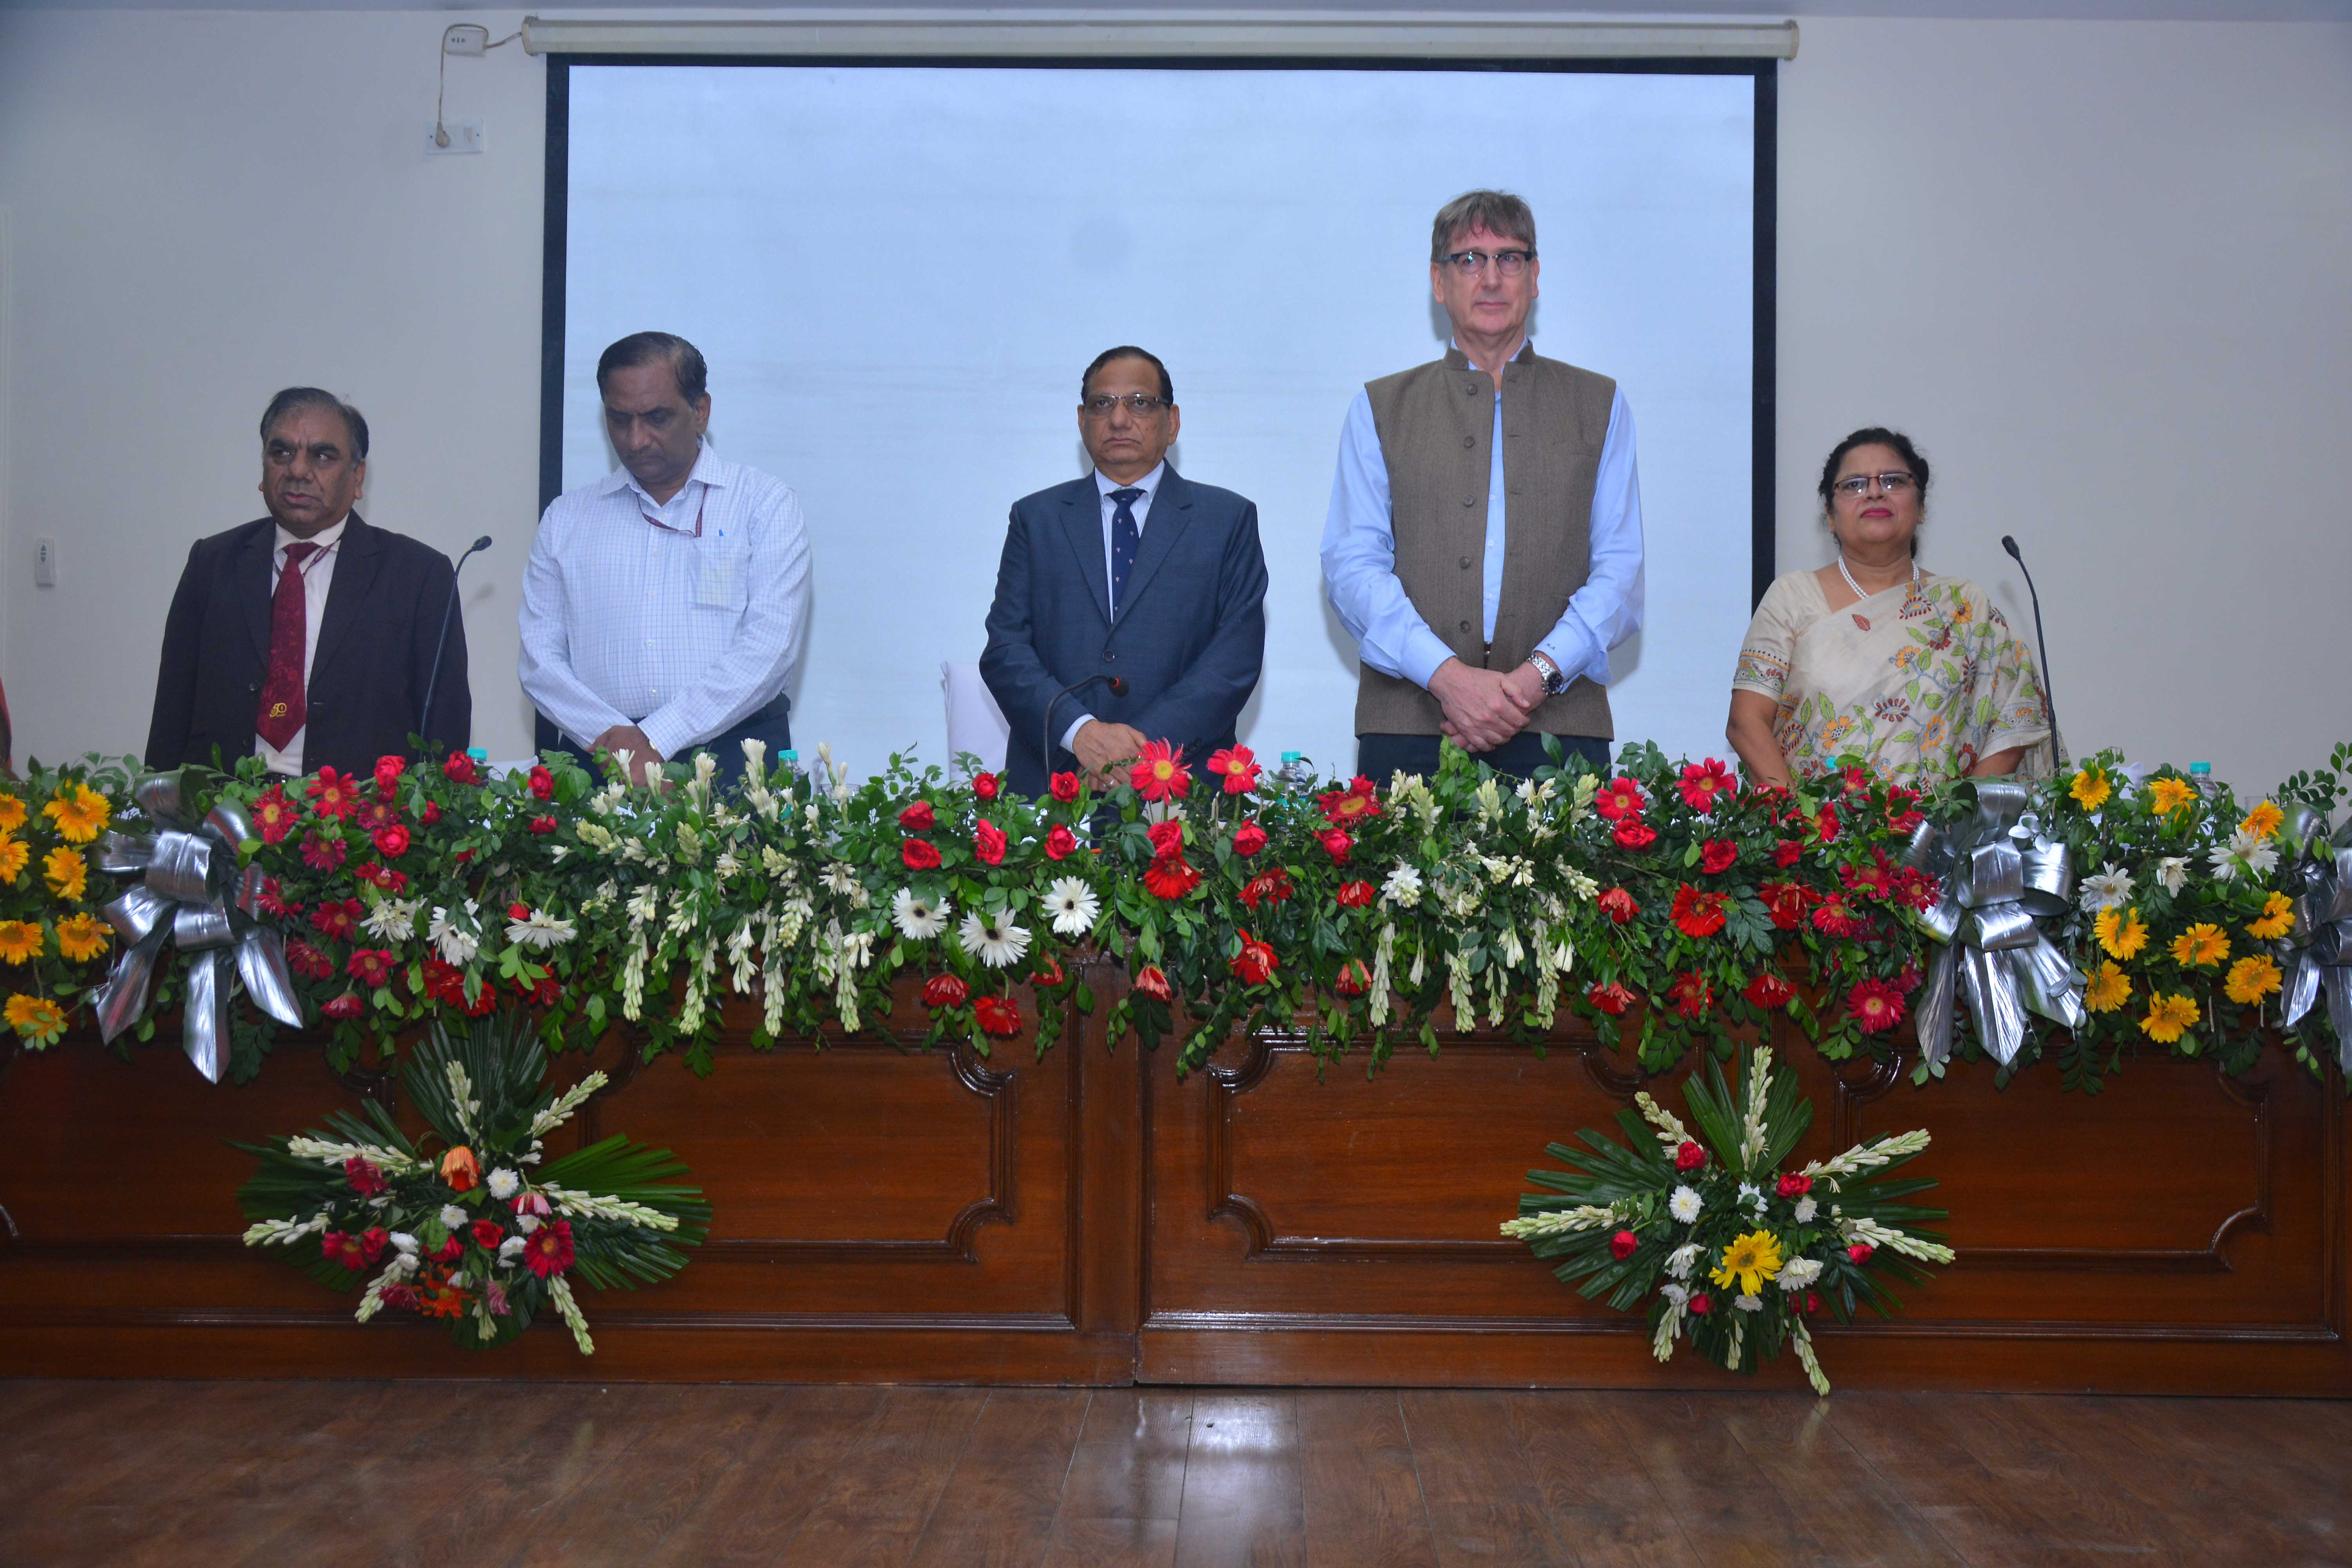 Dignitaries on the dais (from L TO R) Dr S K Singh, Director NCDC; Dr S Venkatesh, DGHS; Dr Vinod K Paul, Member NITI Ayog; Dr Henk Bekedam, WHO Representative India & Dr Sarita Dhawan, Additional Director, NCDC